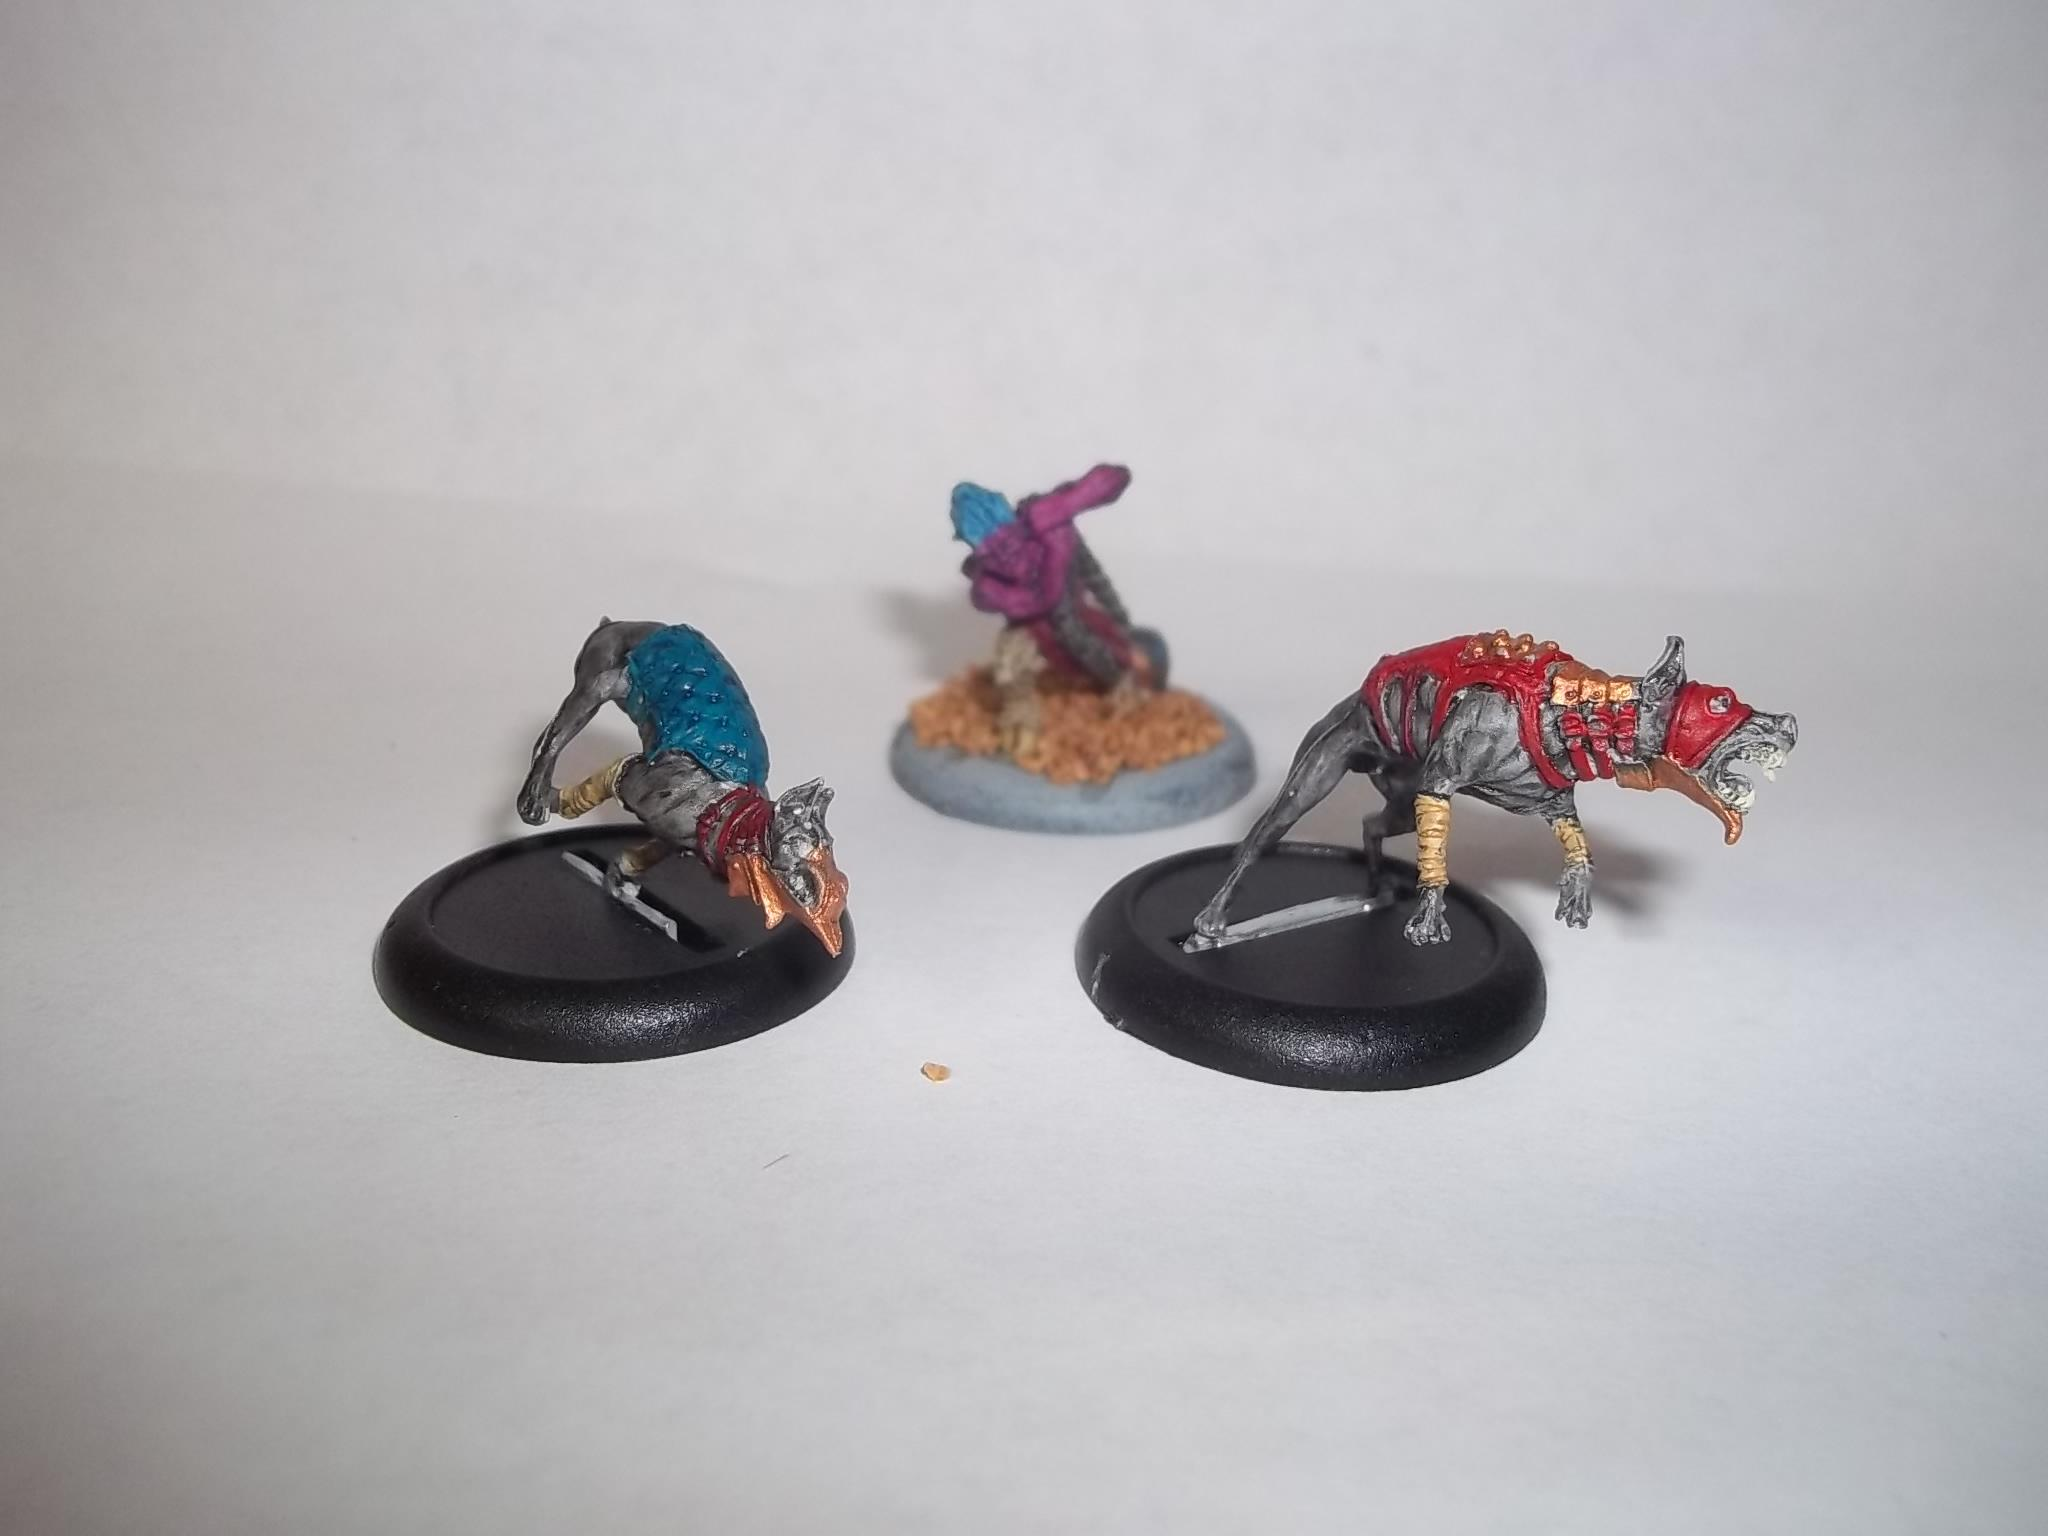 Malicaux, Guild hounds and enslaved nephlim